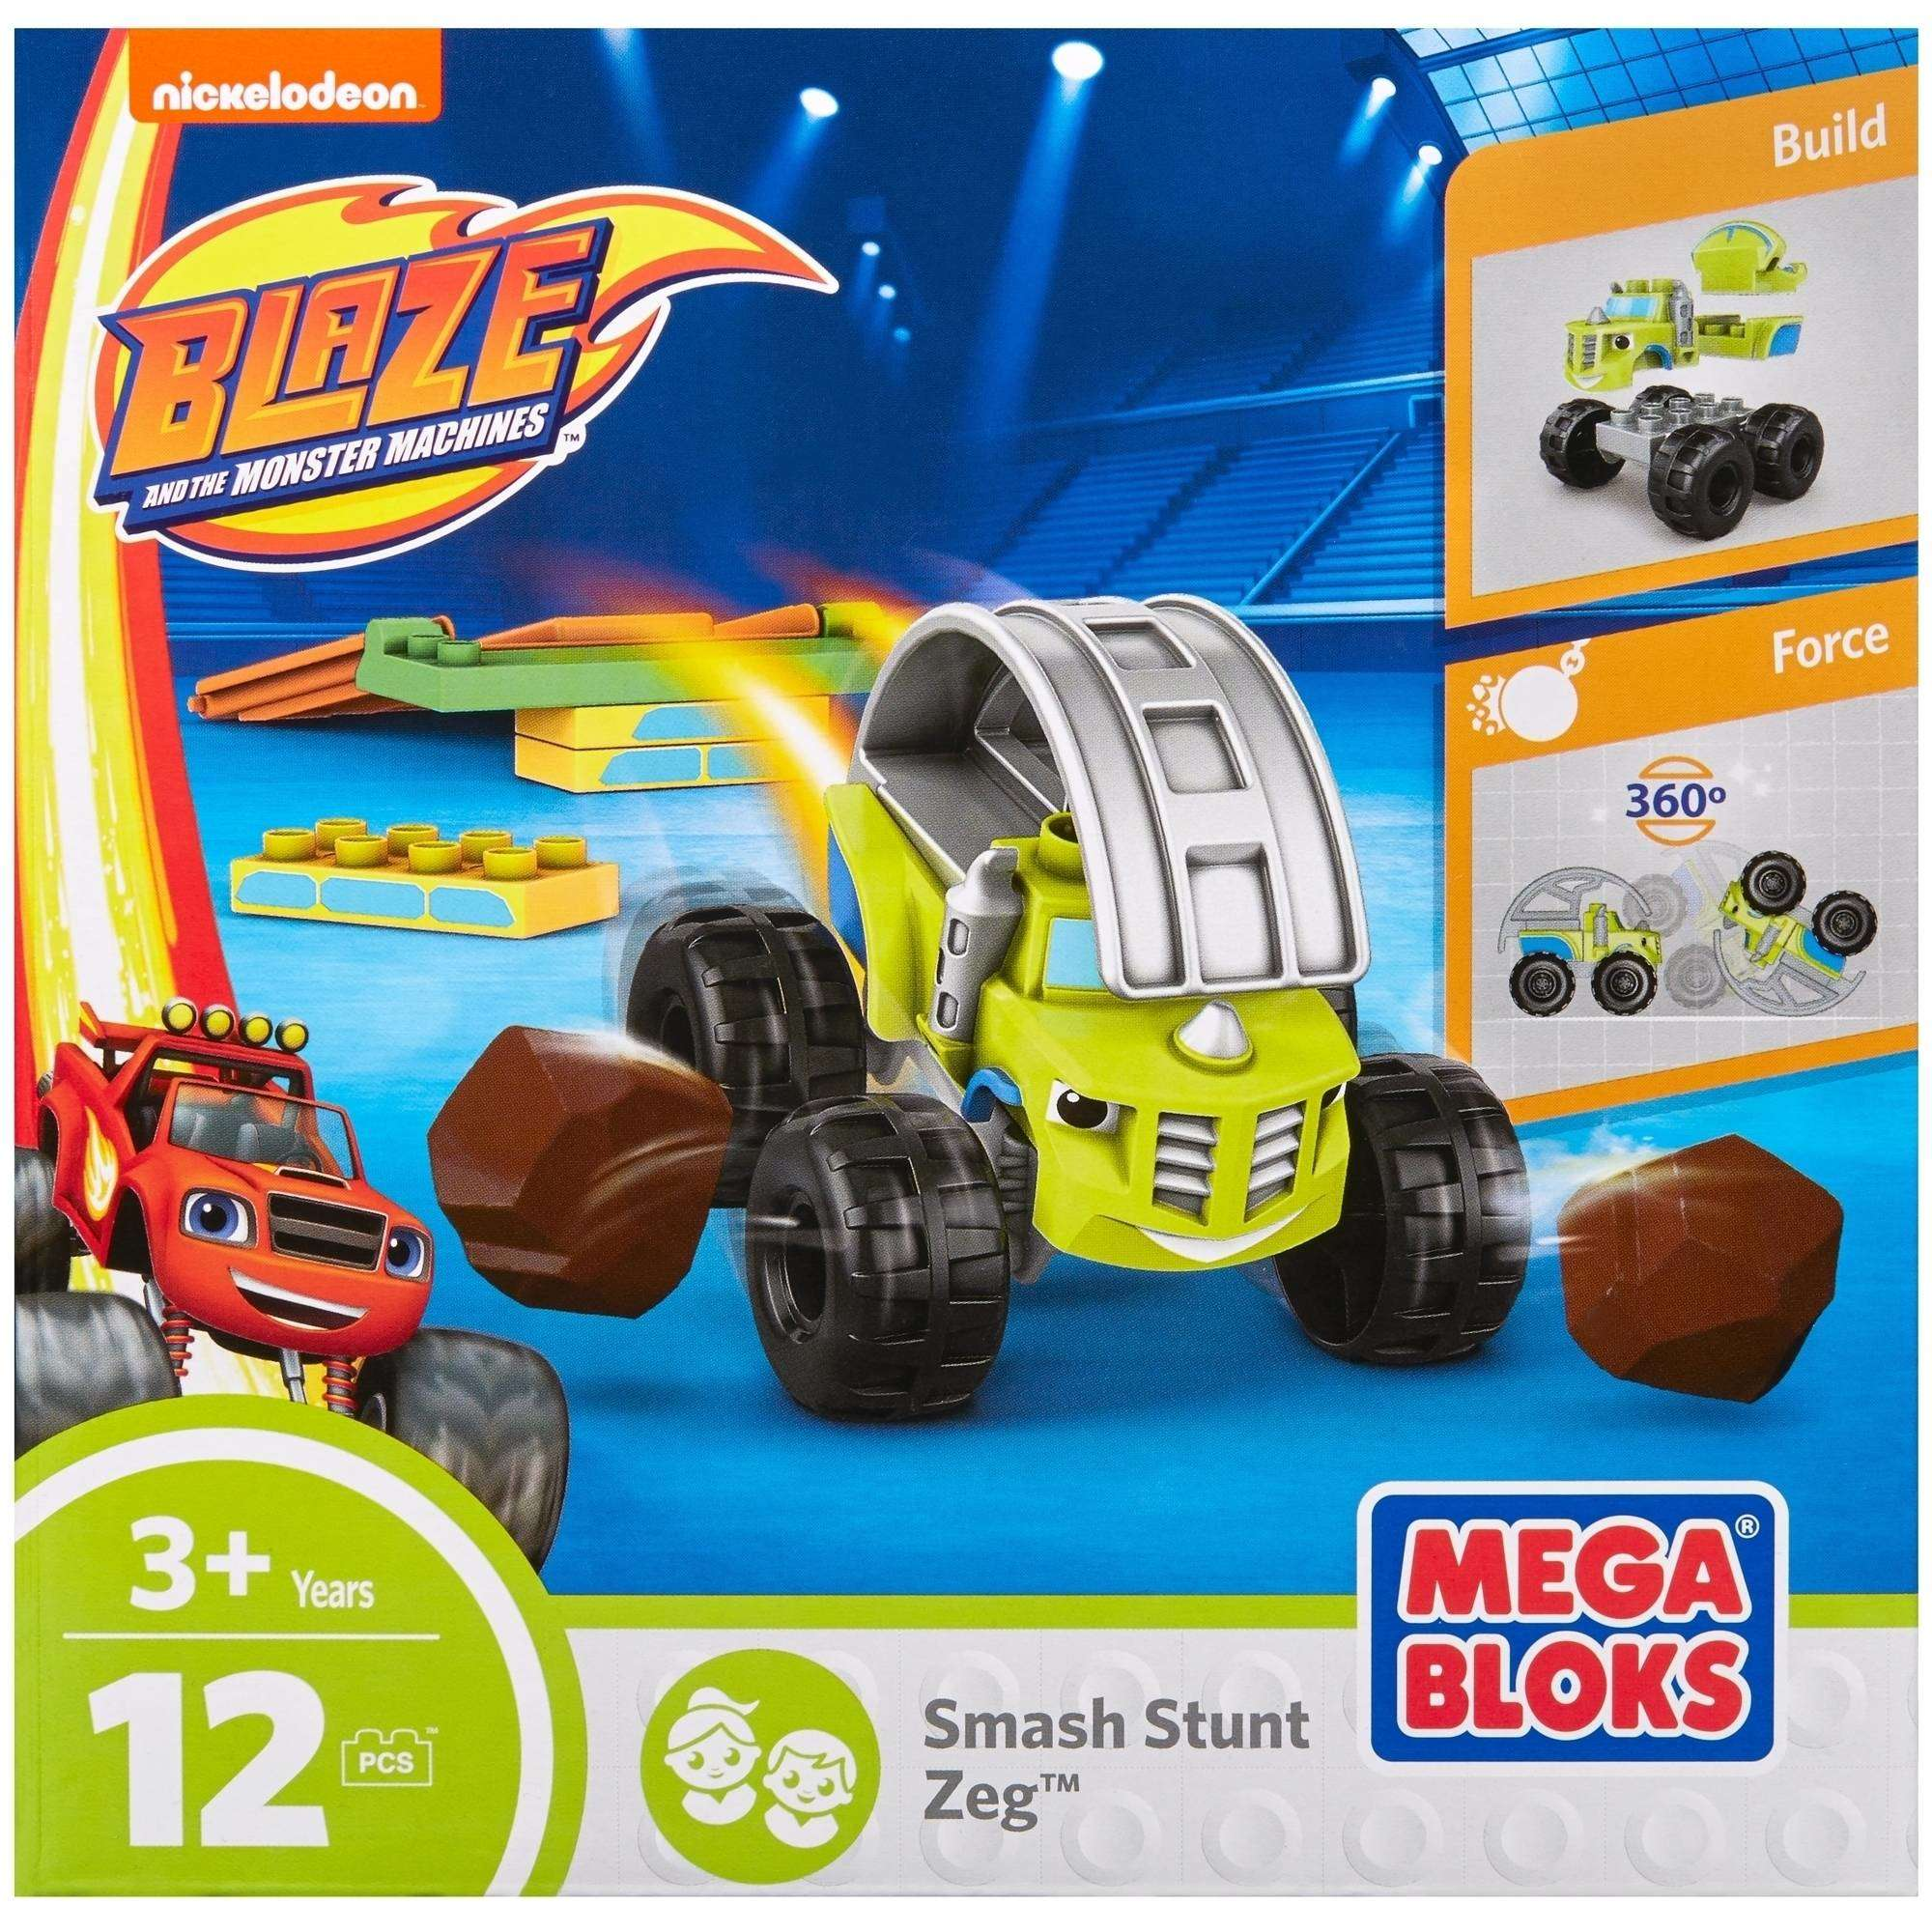 Mega Bloks Nickelodeon Blaze and the Monster Machines Smash Stunt Zeg by Mattel